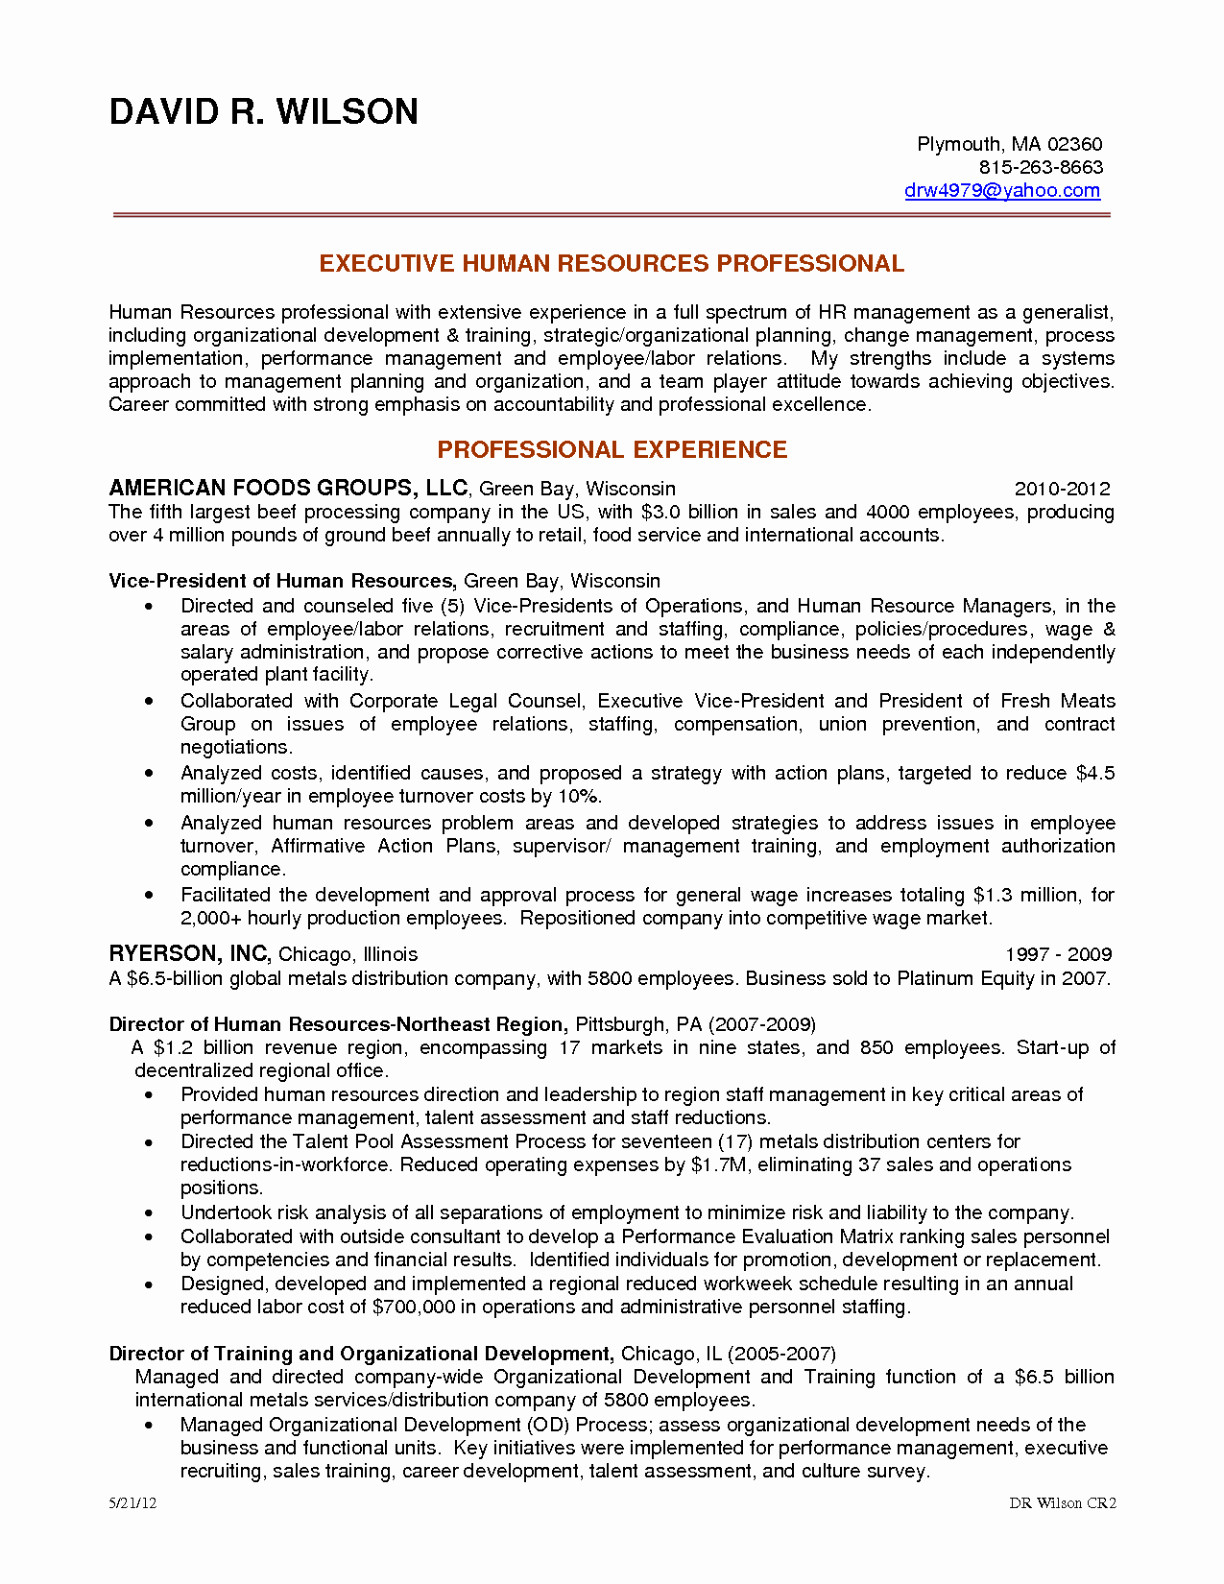 Executive assistant Resume Bullet Points - Resume Medical assistant Examples Elegant Medical assistant Resume